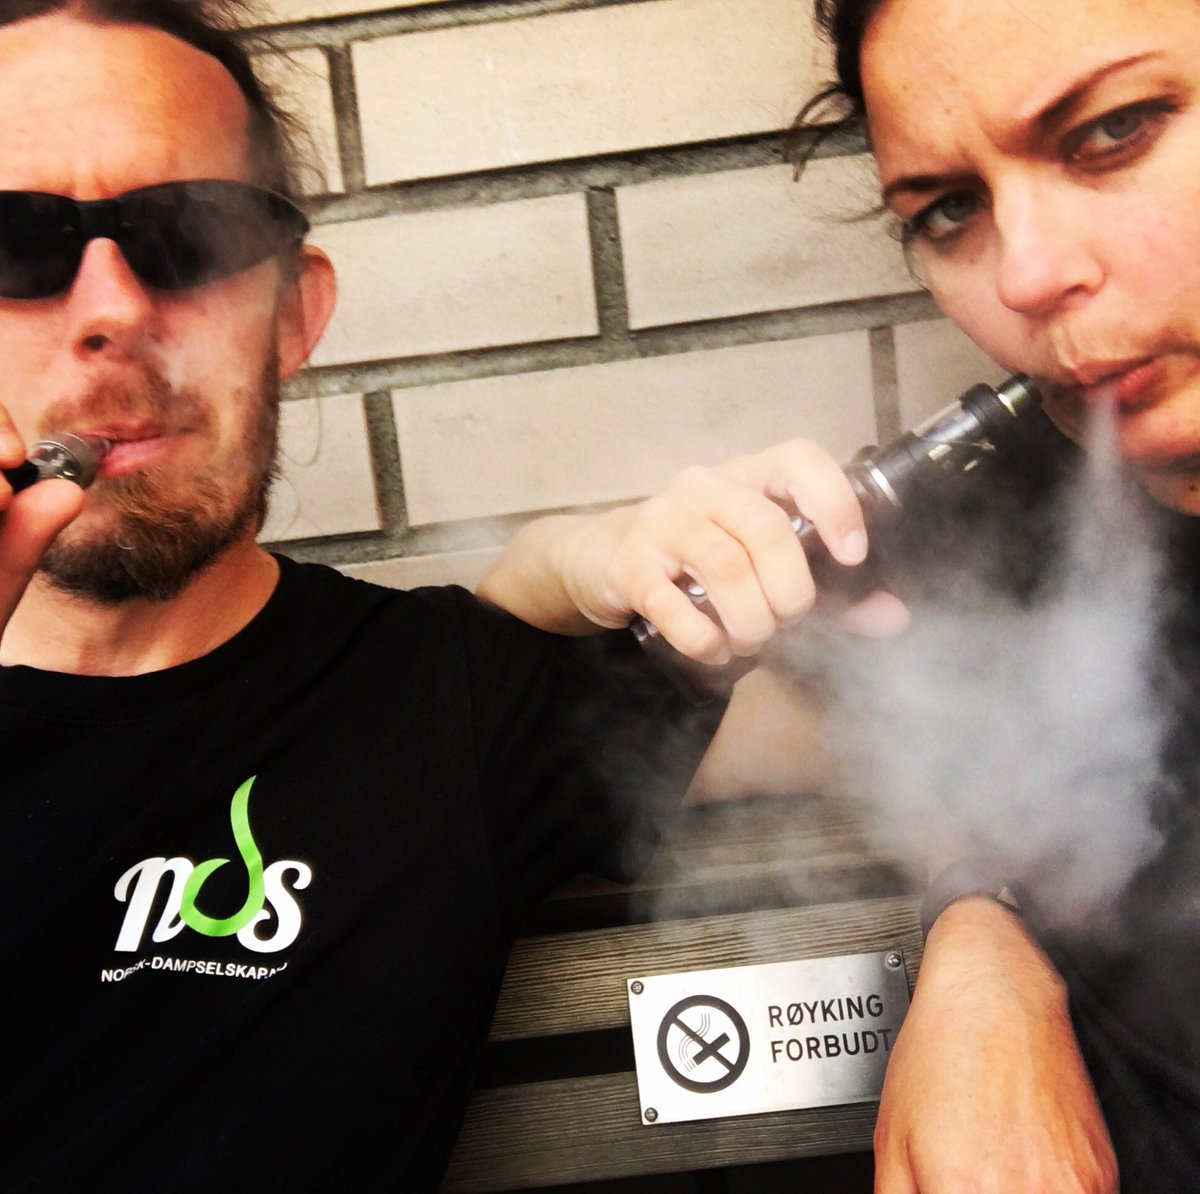 This is now illegal. New laws in Norway that put #vaping in the same box as #smoking is based on #prejudices instead of #knowledge. <br>http://pic.twitter.com/aFzpMnXPfh